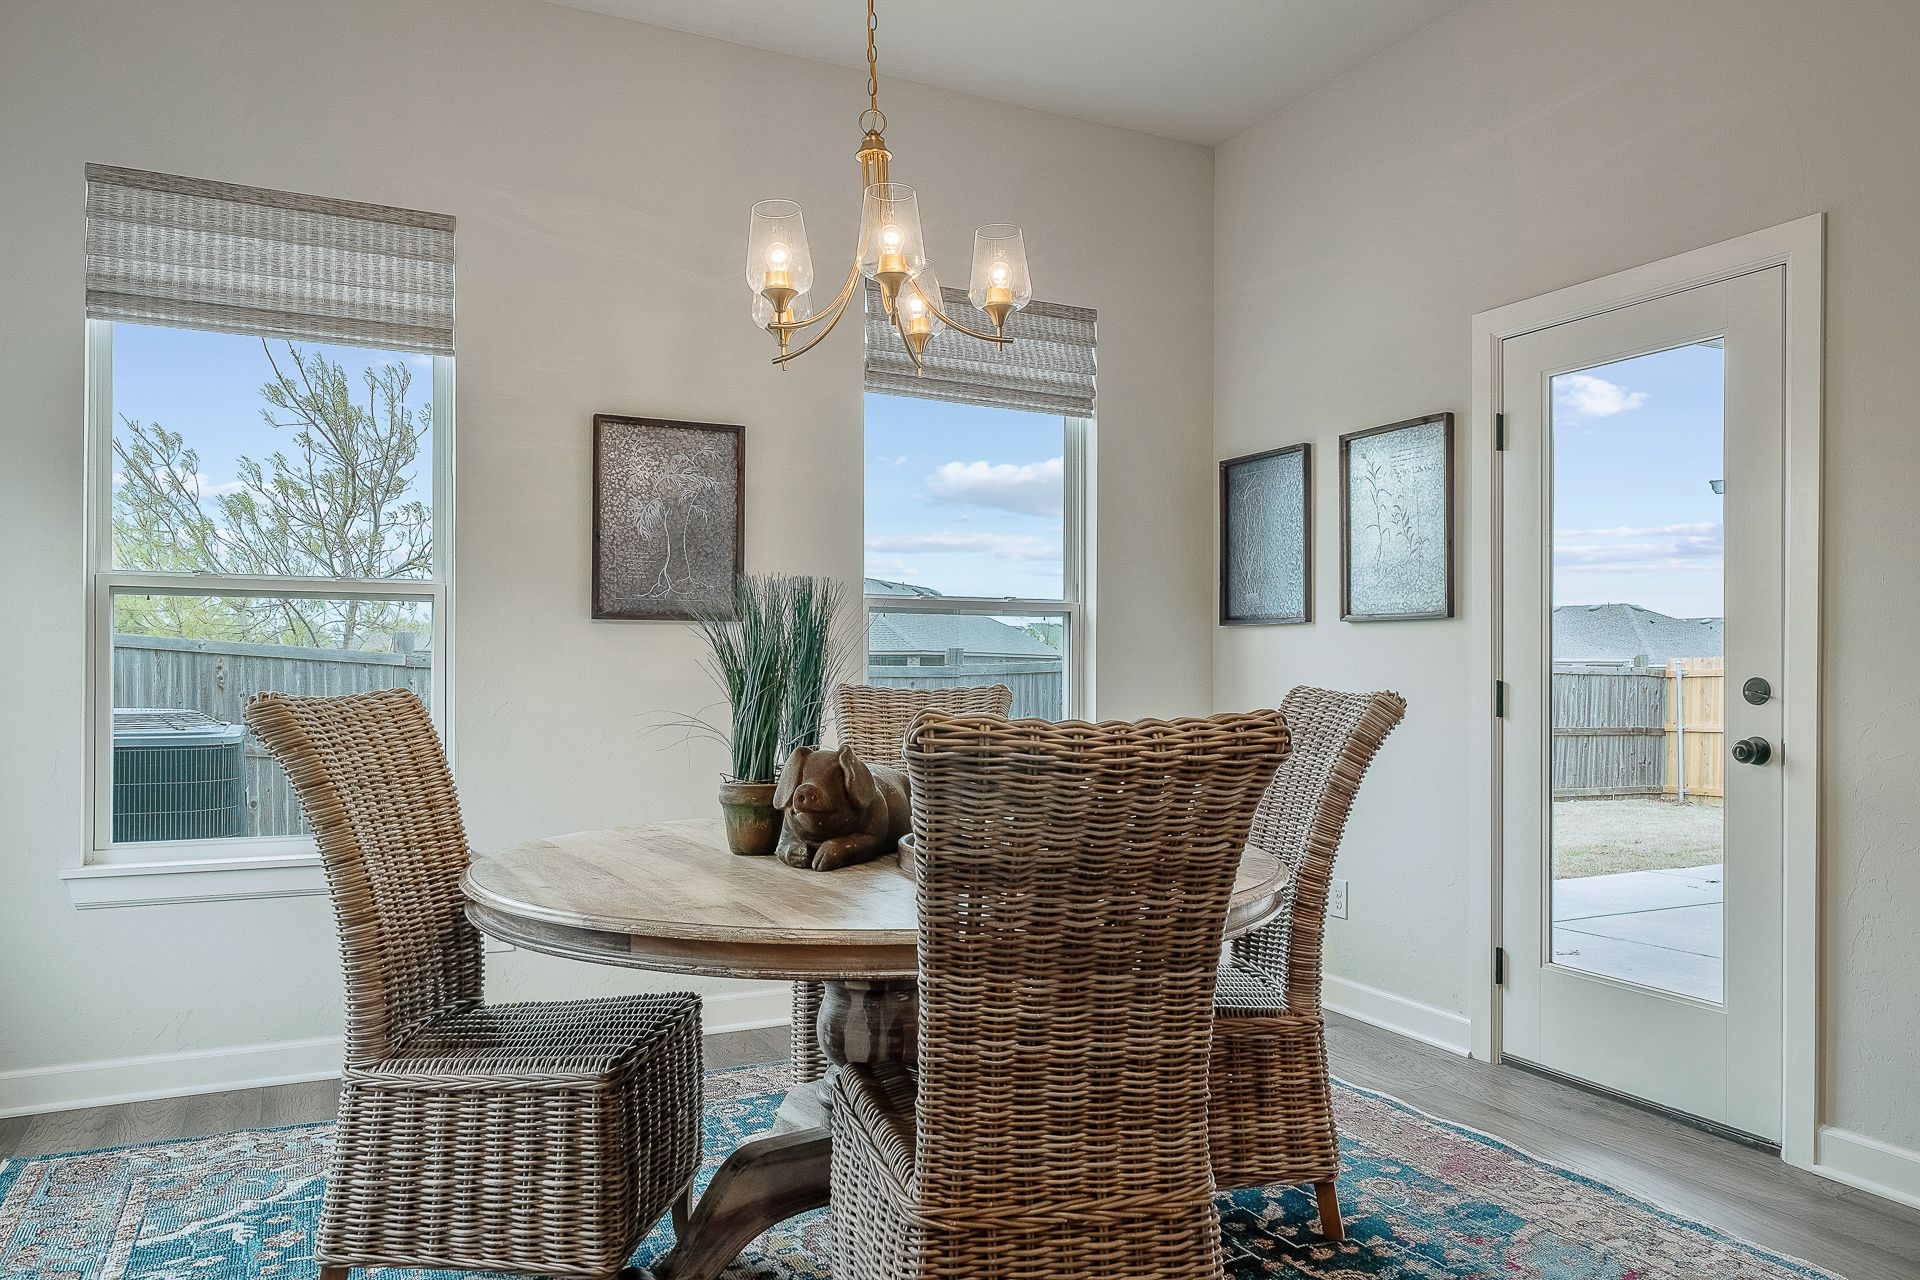 Kitchen featured in the Orwell By Ideal Homes in Oklahoma City, OK